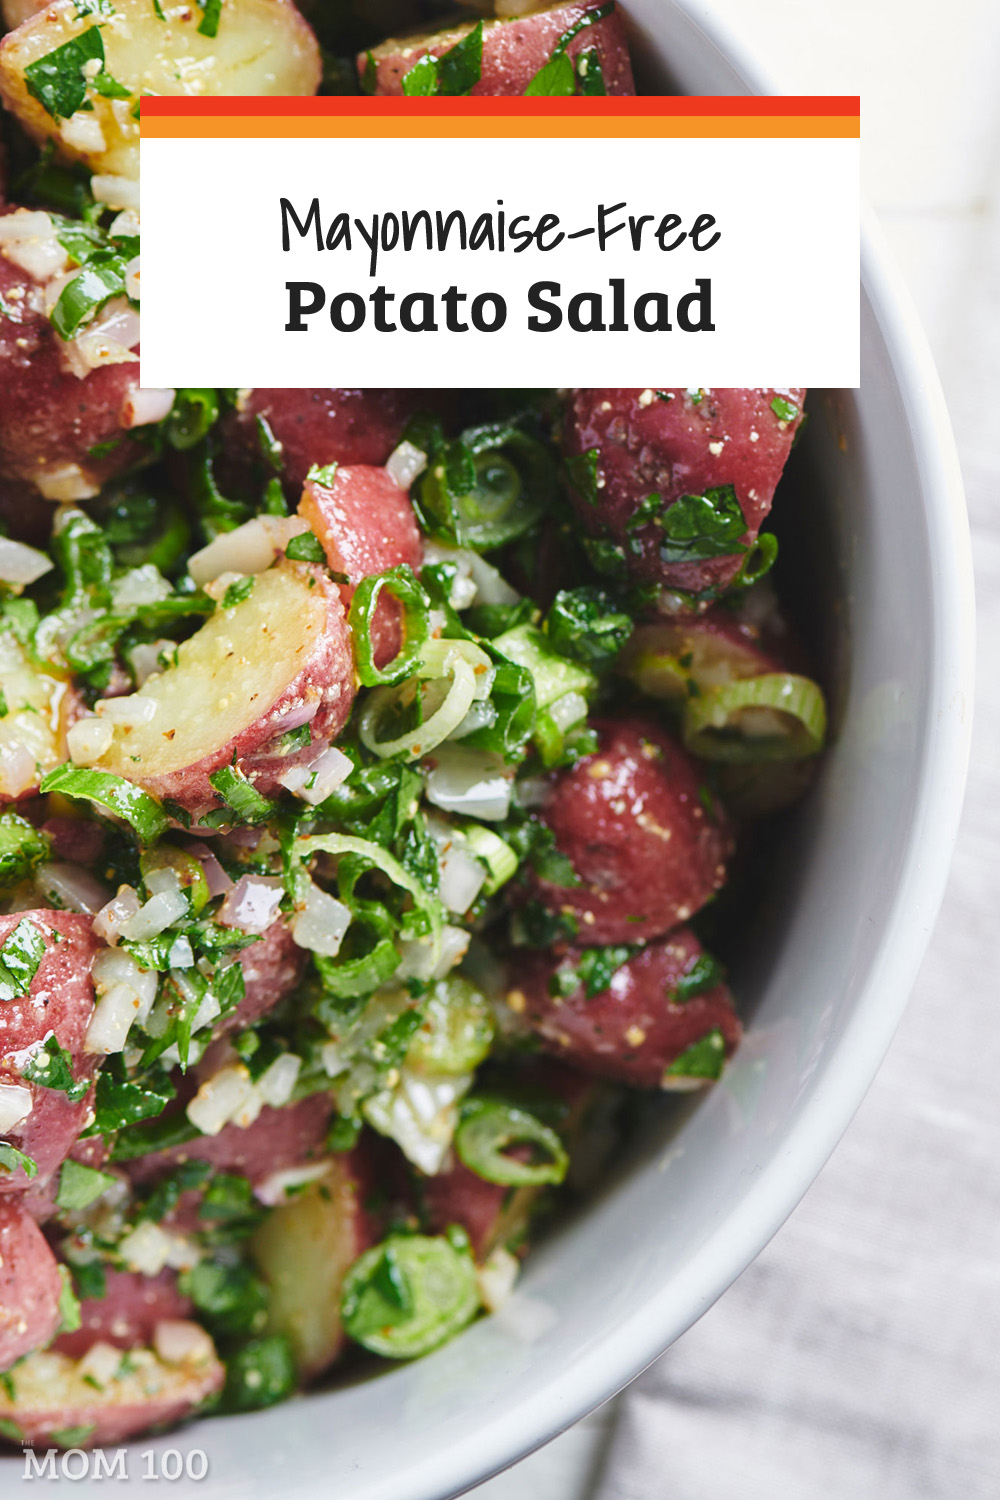 Best Mayonnaise Free Potato Salad: Sometimes you just want a great potato salad without the mayo - this one has classic flavors and comes together in 20 minutes.